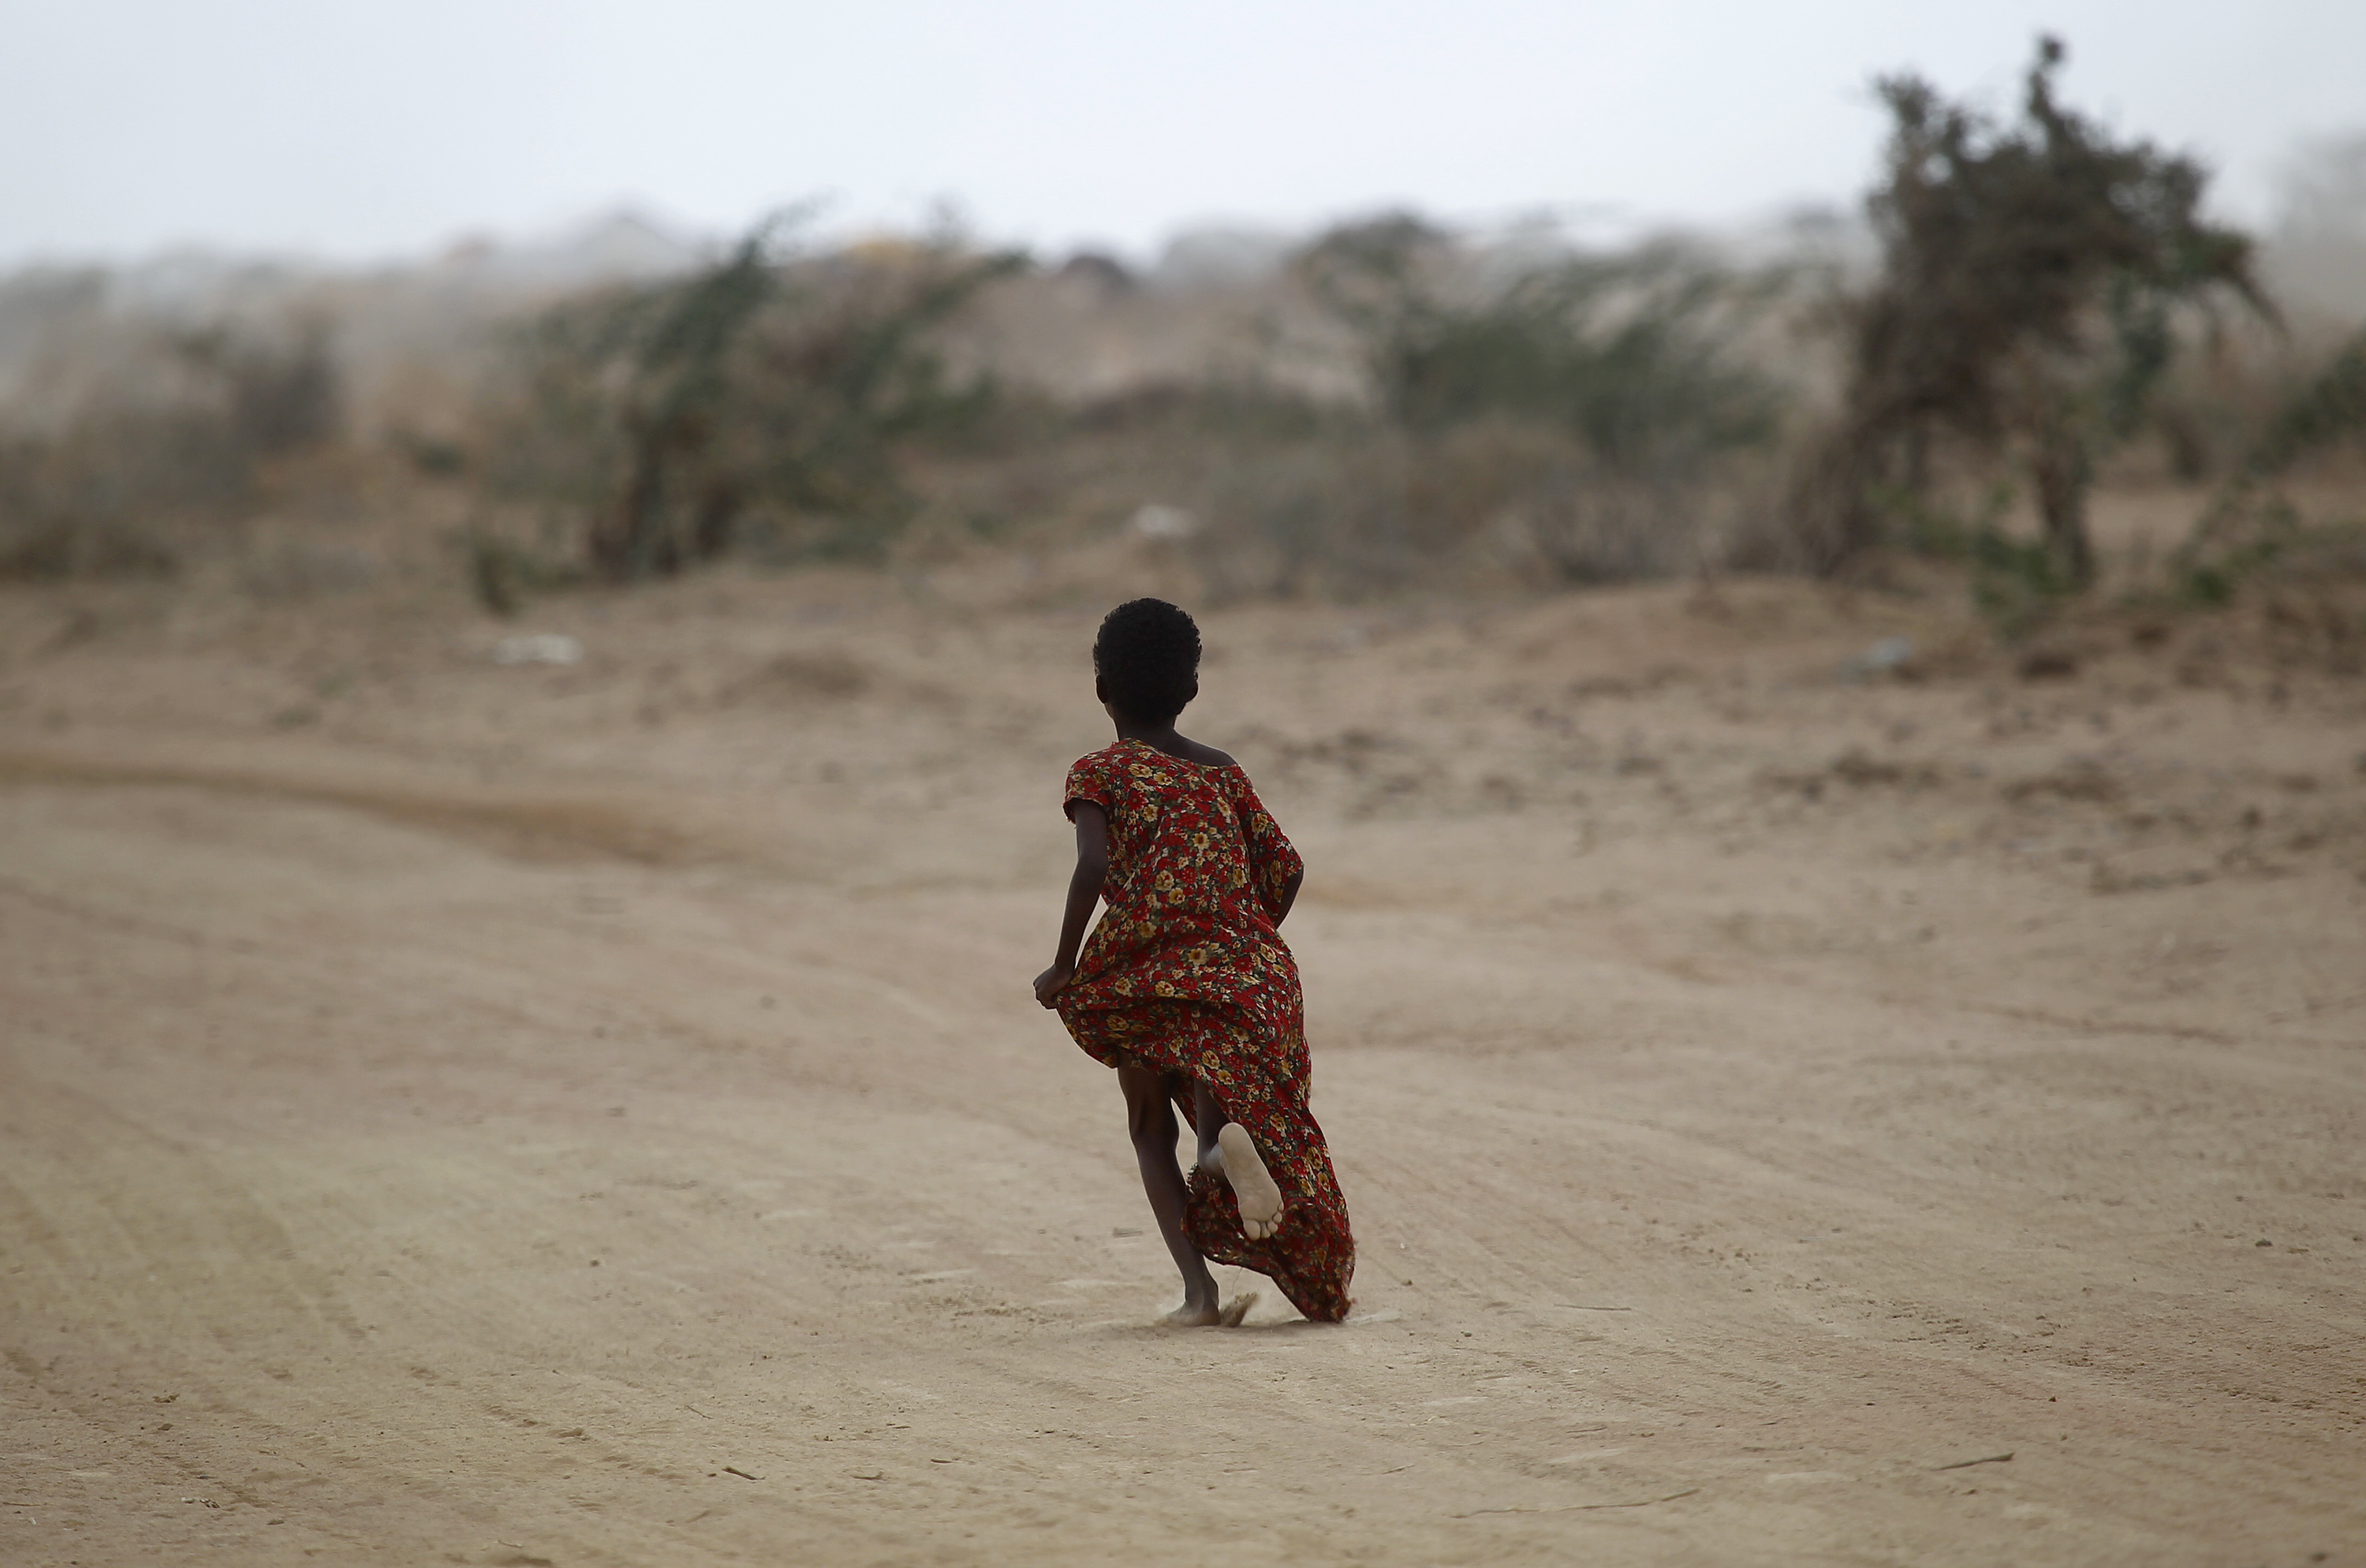 starvation in africa 11 facts about hunger and famine   66 million primary-school-age children attend classes hungry across the developing world, with 23 million in africa alone.